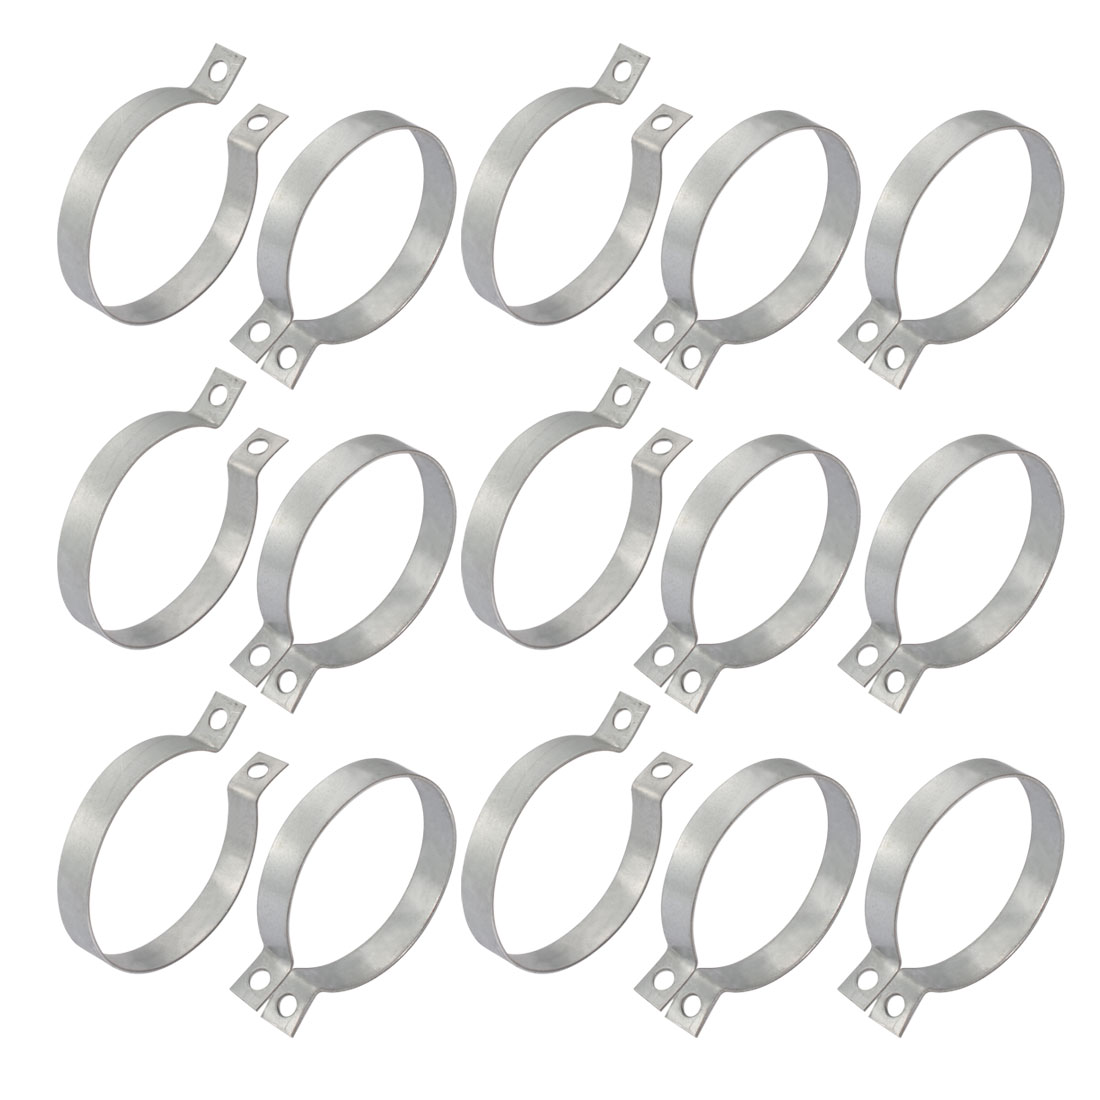 15pcs 76mm Fitting Dia Iron Zinc Plated Pipe Clamp w Screws Nuts